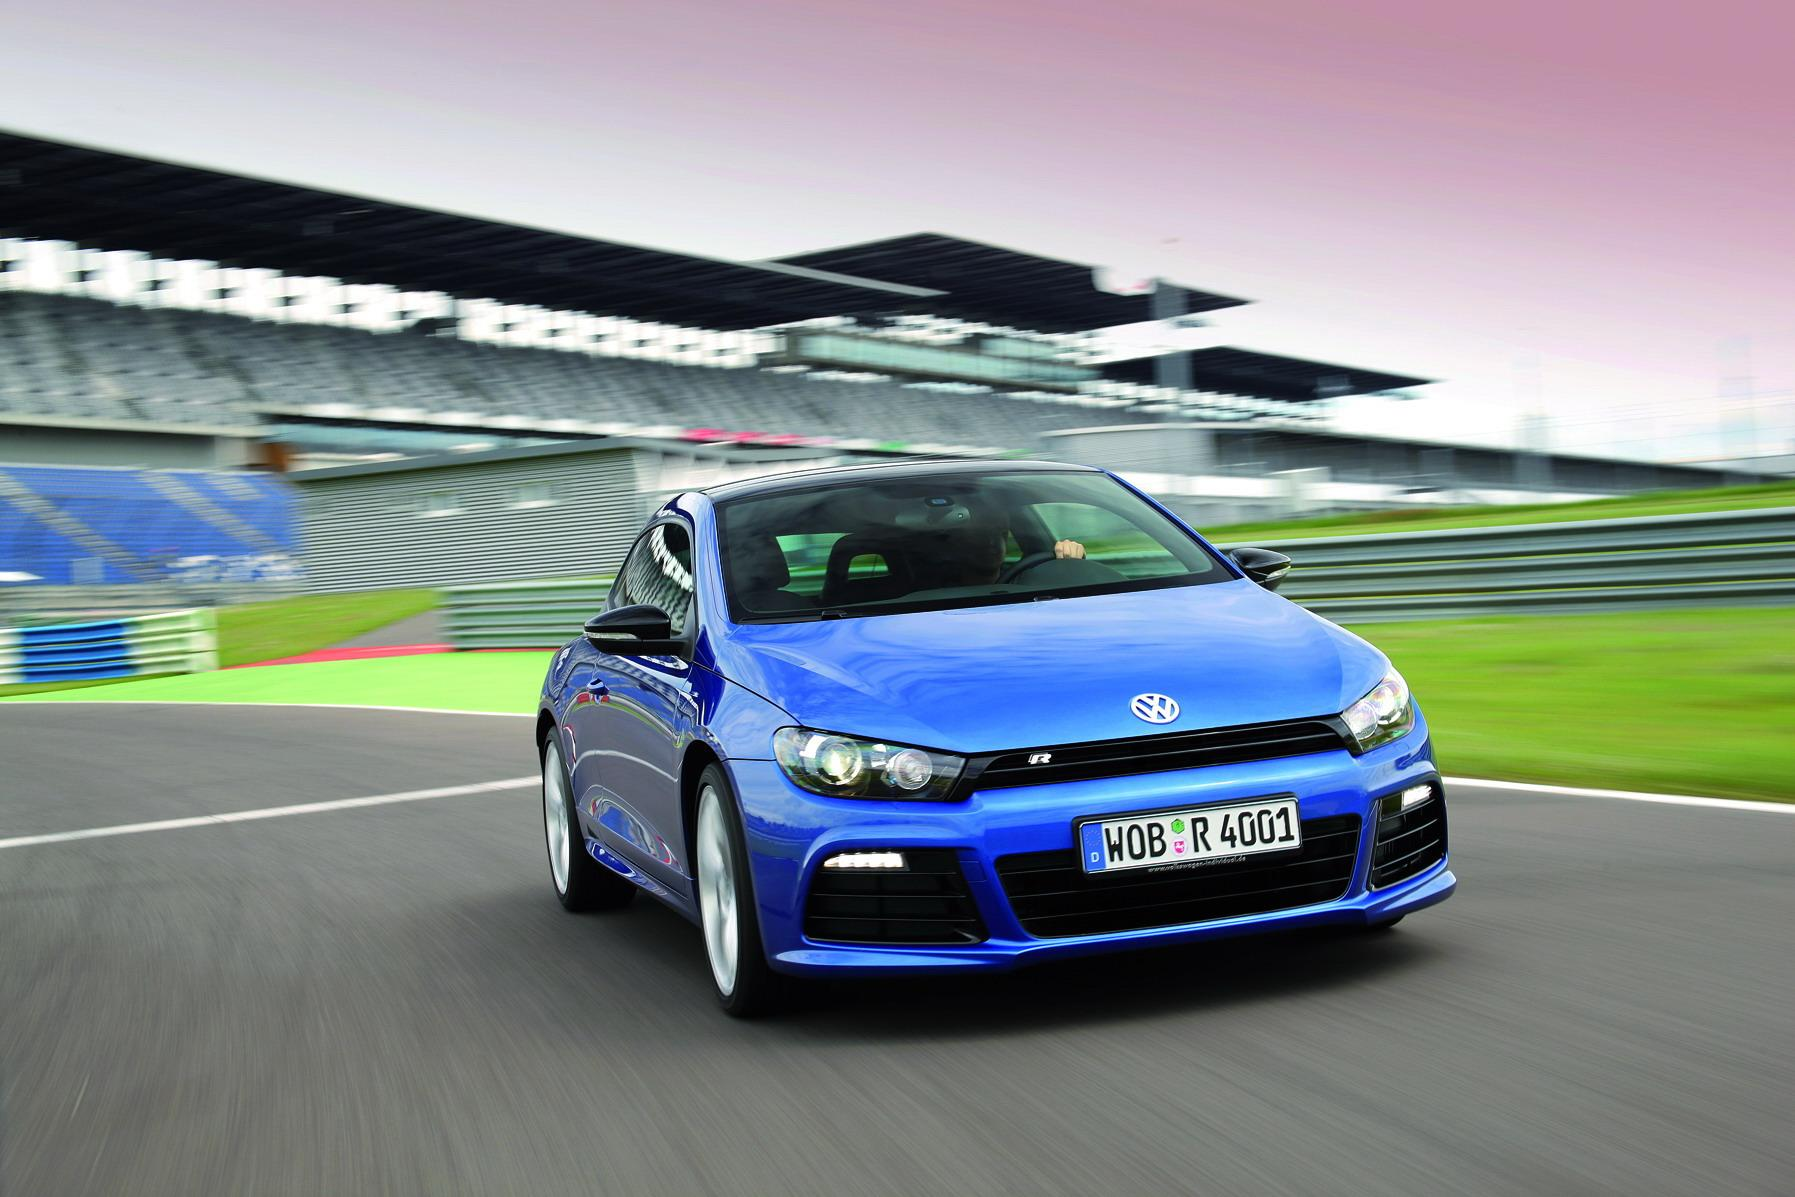 Elegant 2010 Volkswagen Scirocco R Review   Top Speed. »